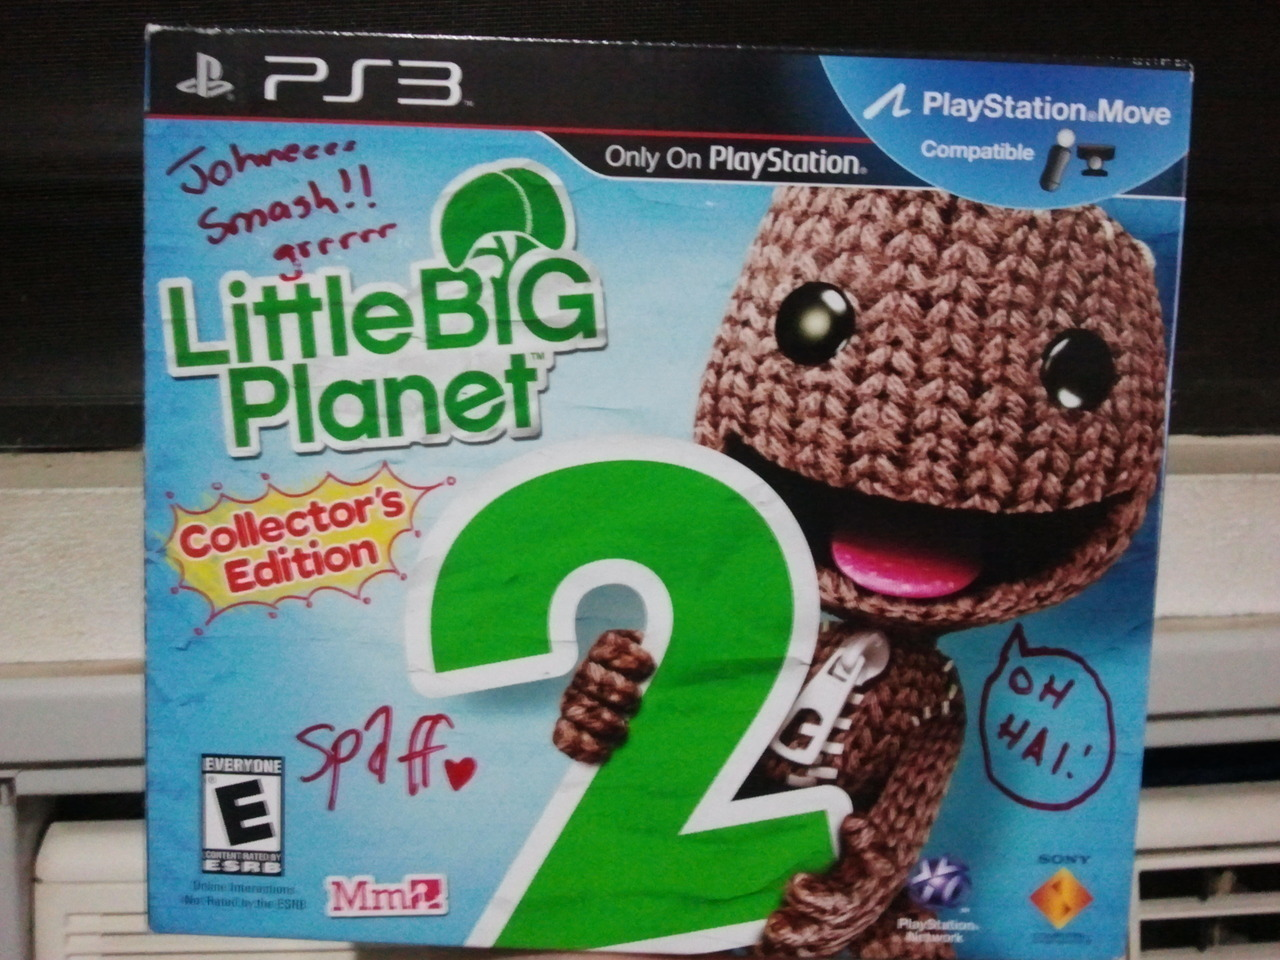 My LittleBigPlanet 2 Collector's Edition, signed by Media Molecule, unopened. So lucky to have this! Also, I just got into the LittleBigPlanet Karting beta. Woo!